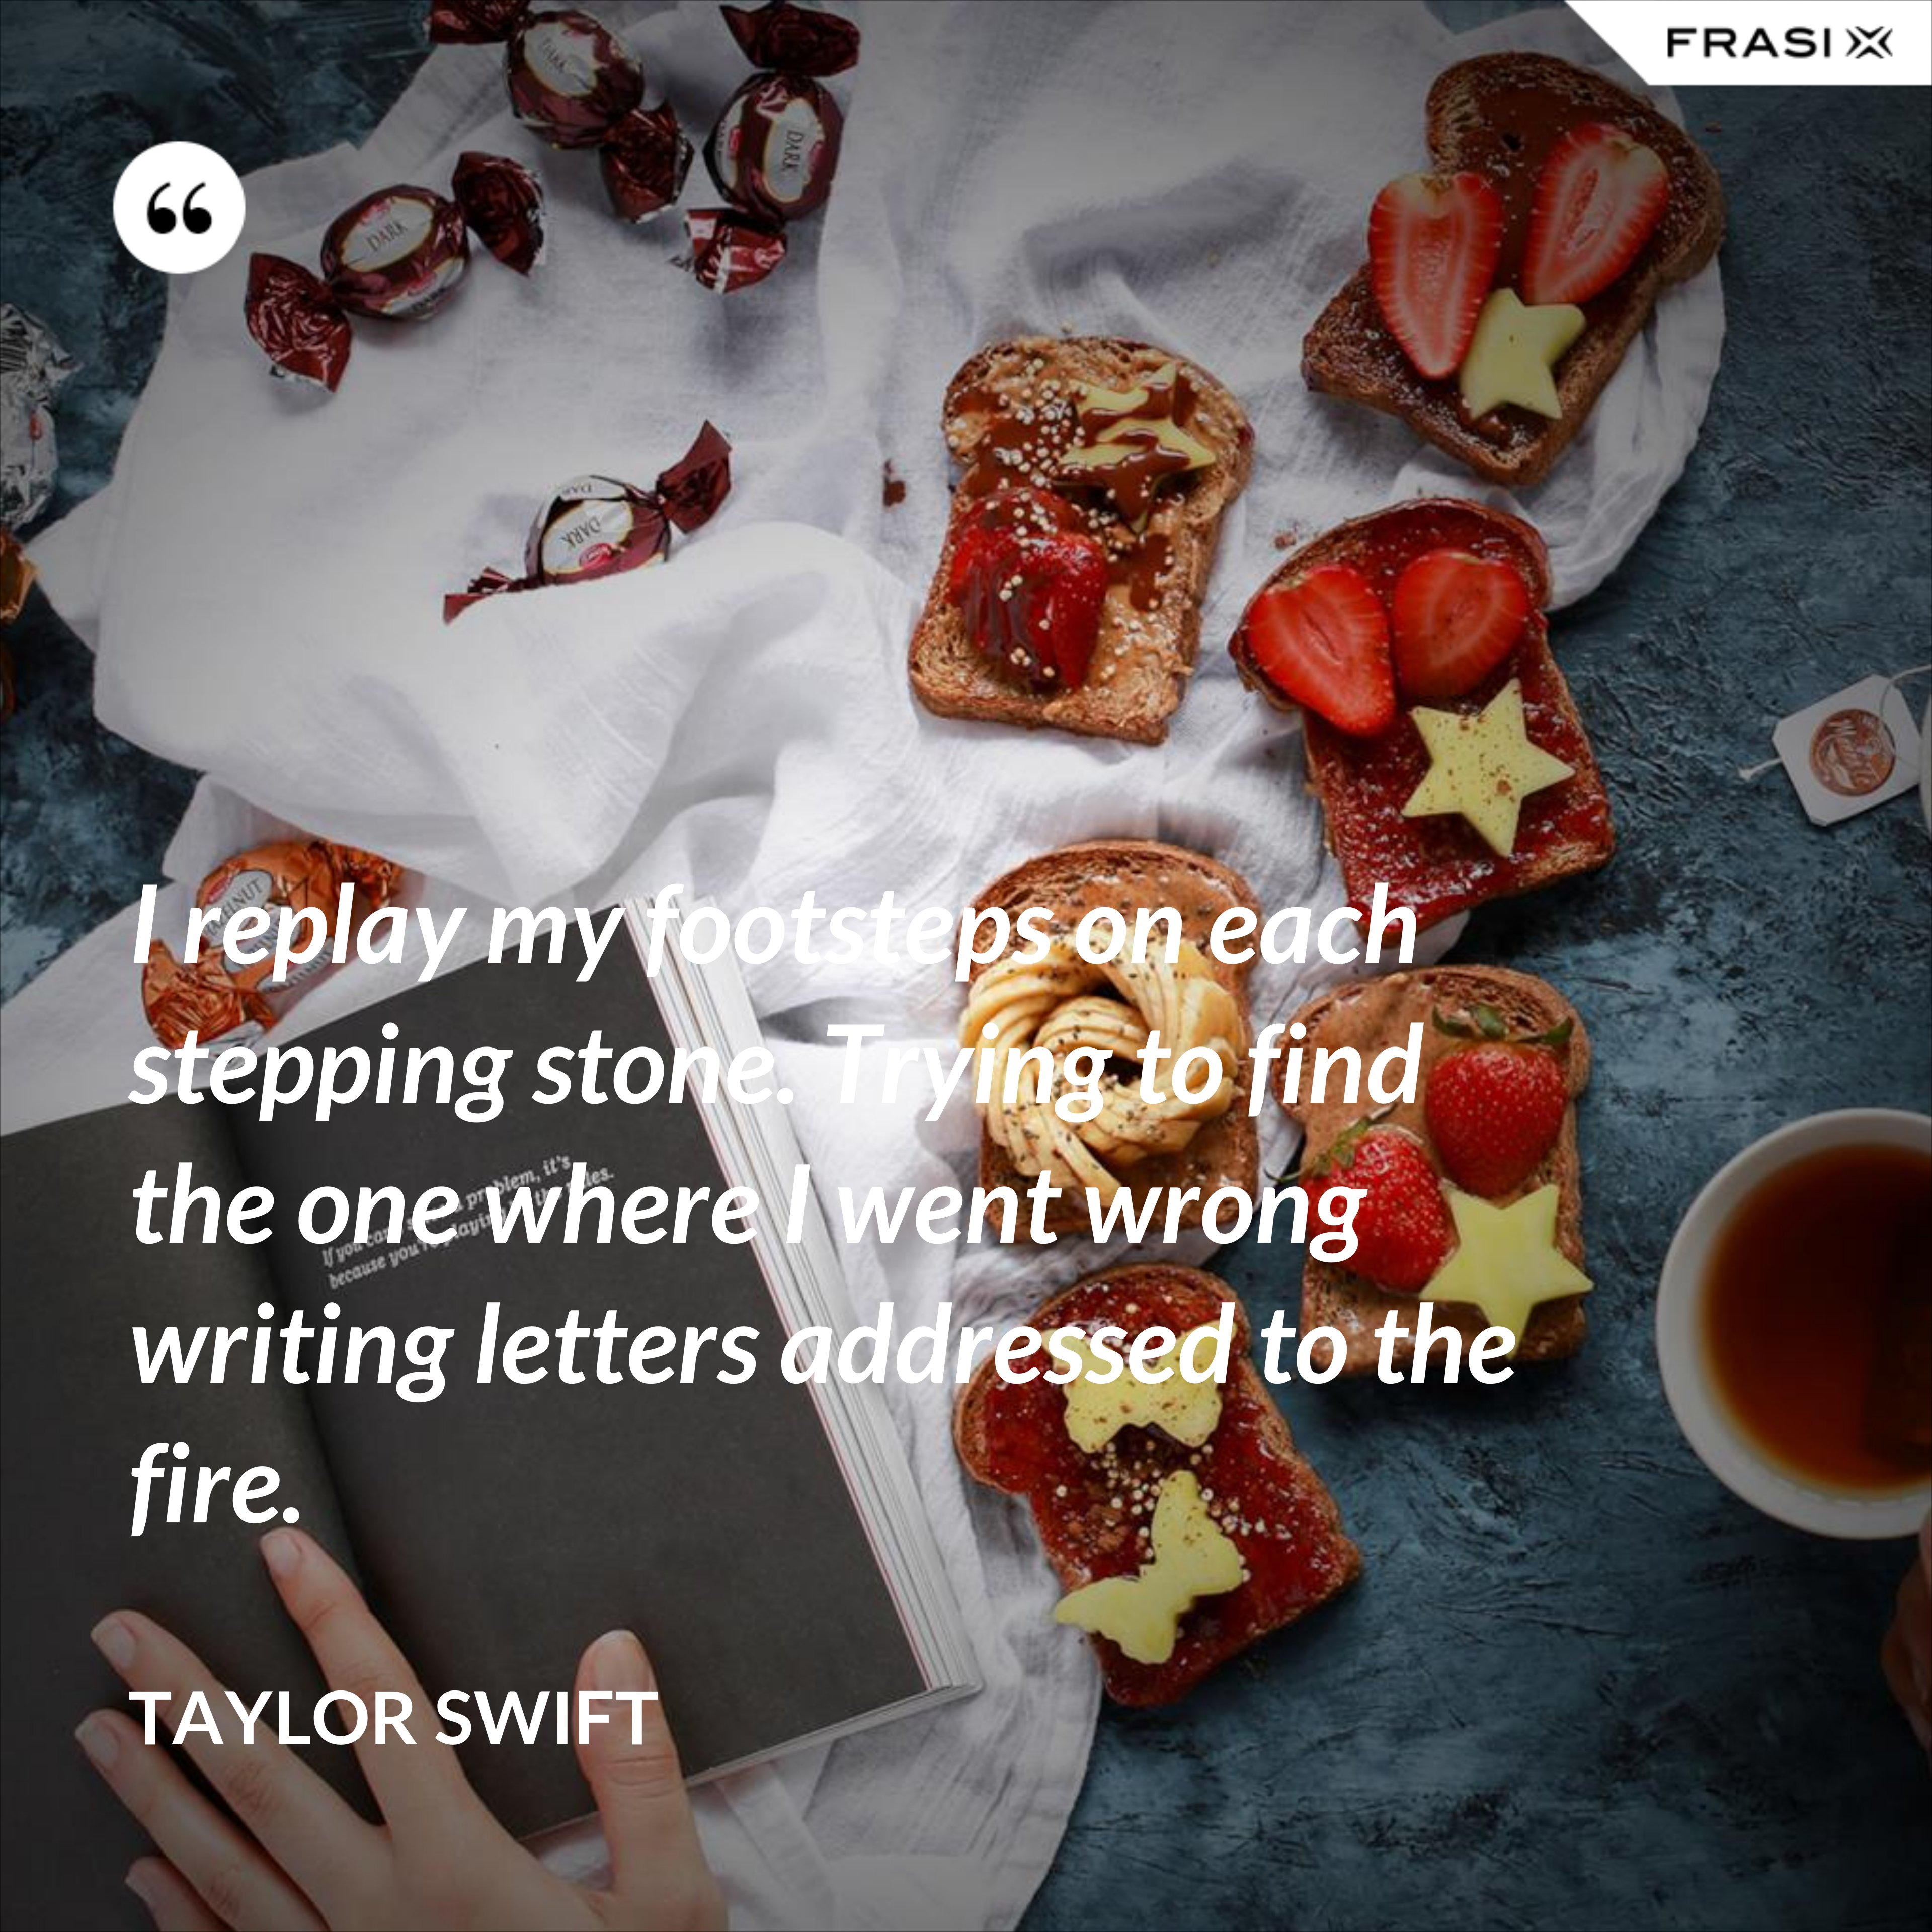 I replay my footsteps on each stepping stone. Trying to find the one where I went wrong writing letters addressed to the fire. - Taylor Swift